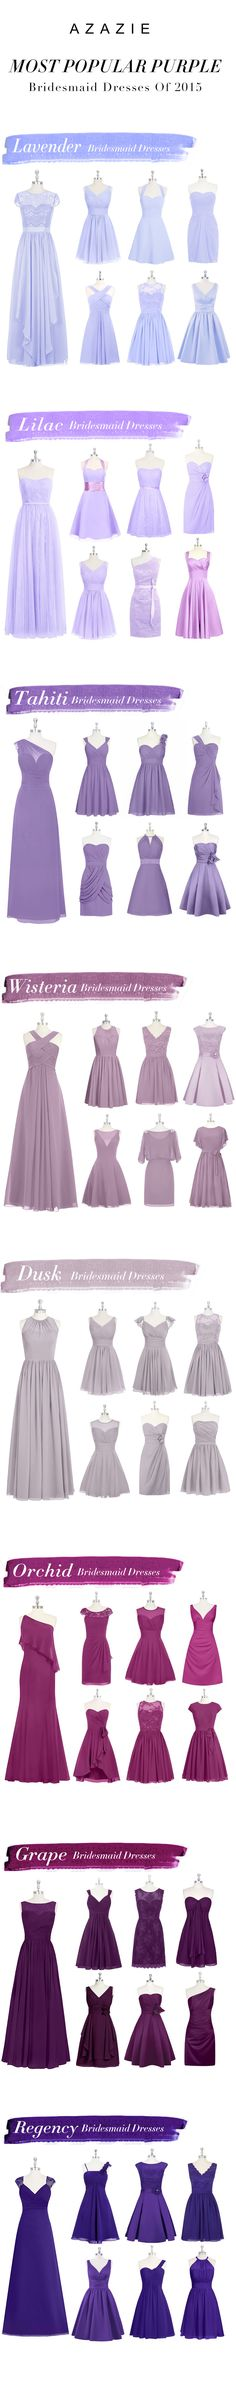 Most Popular Purple Bridesmaid Dresses By Azazie.